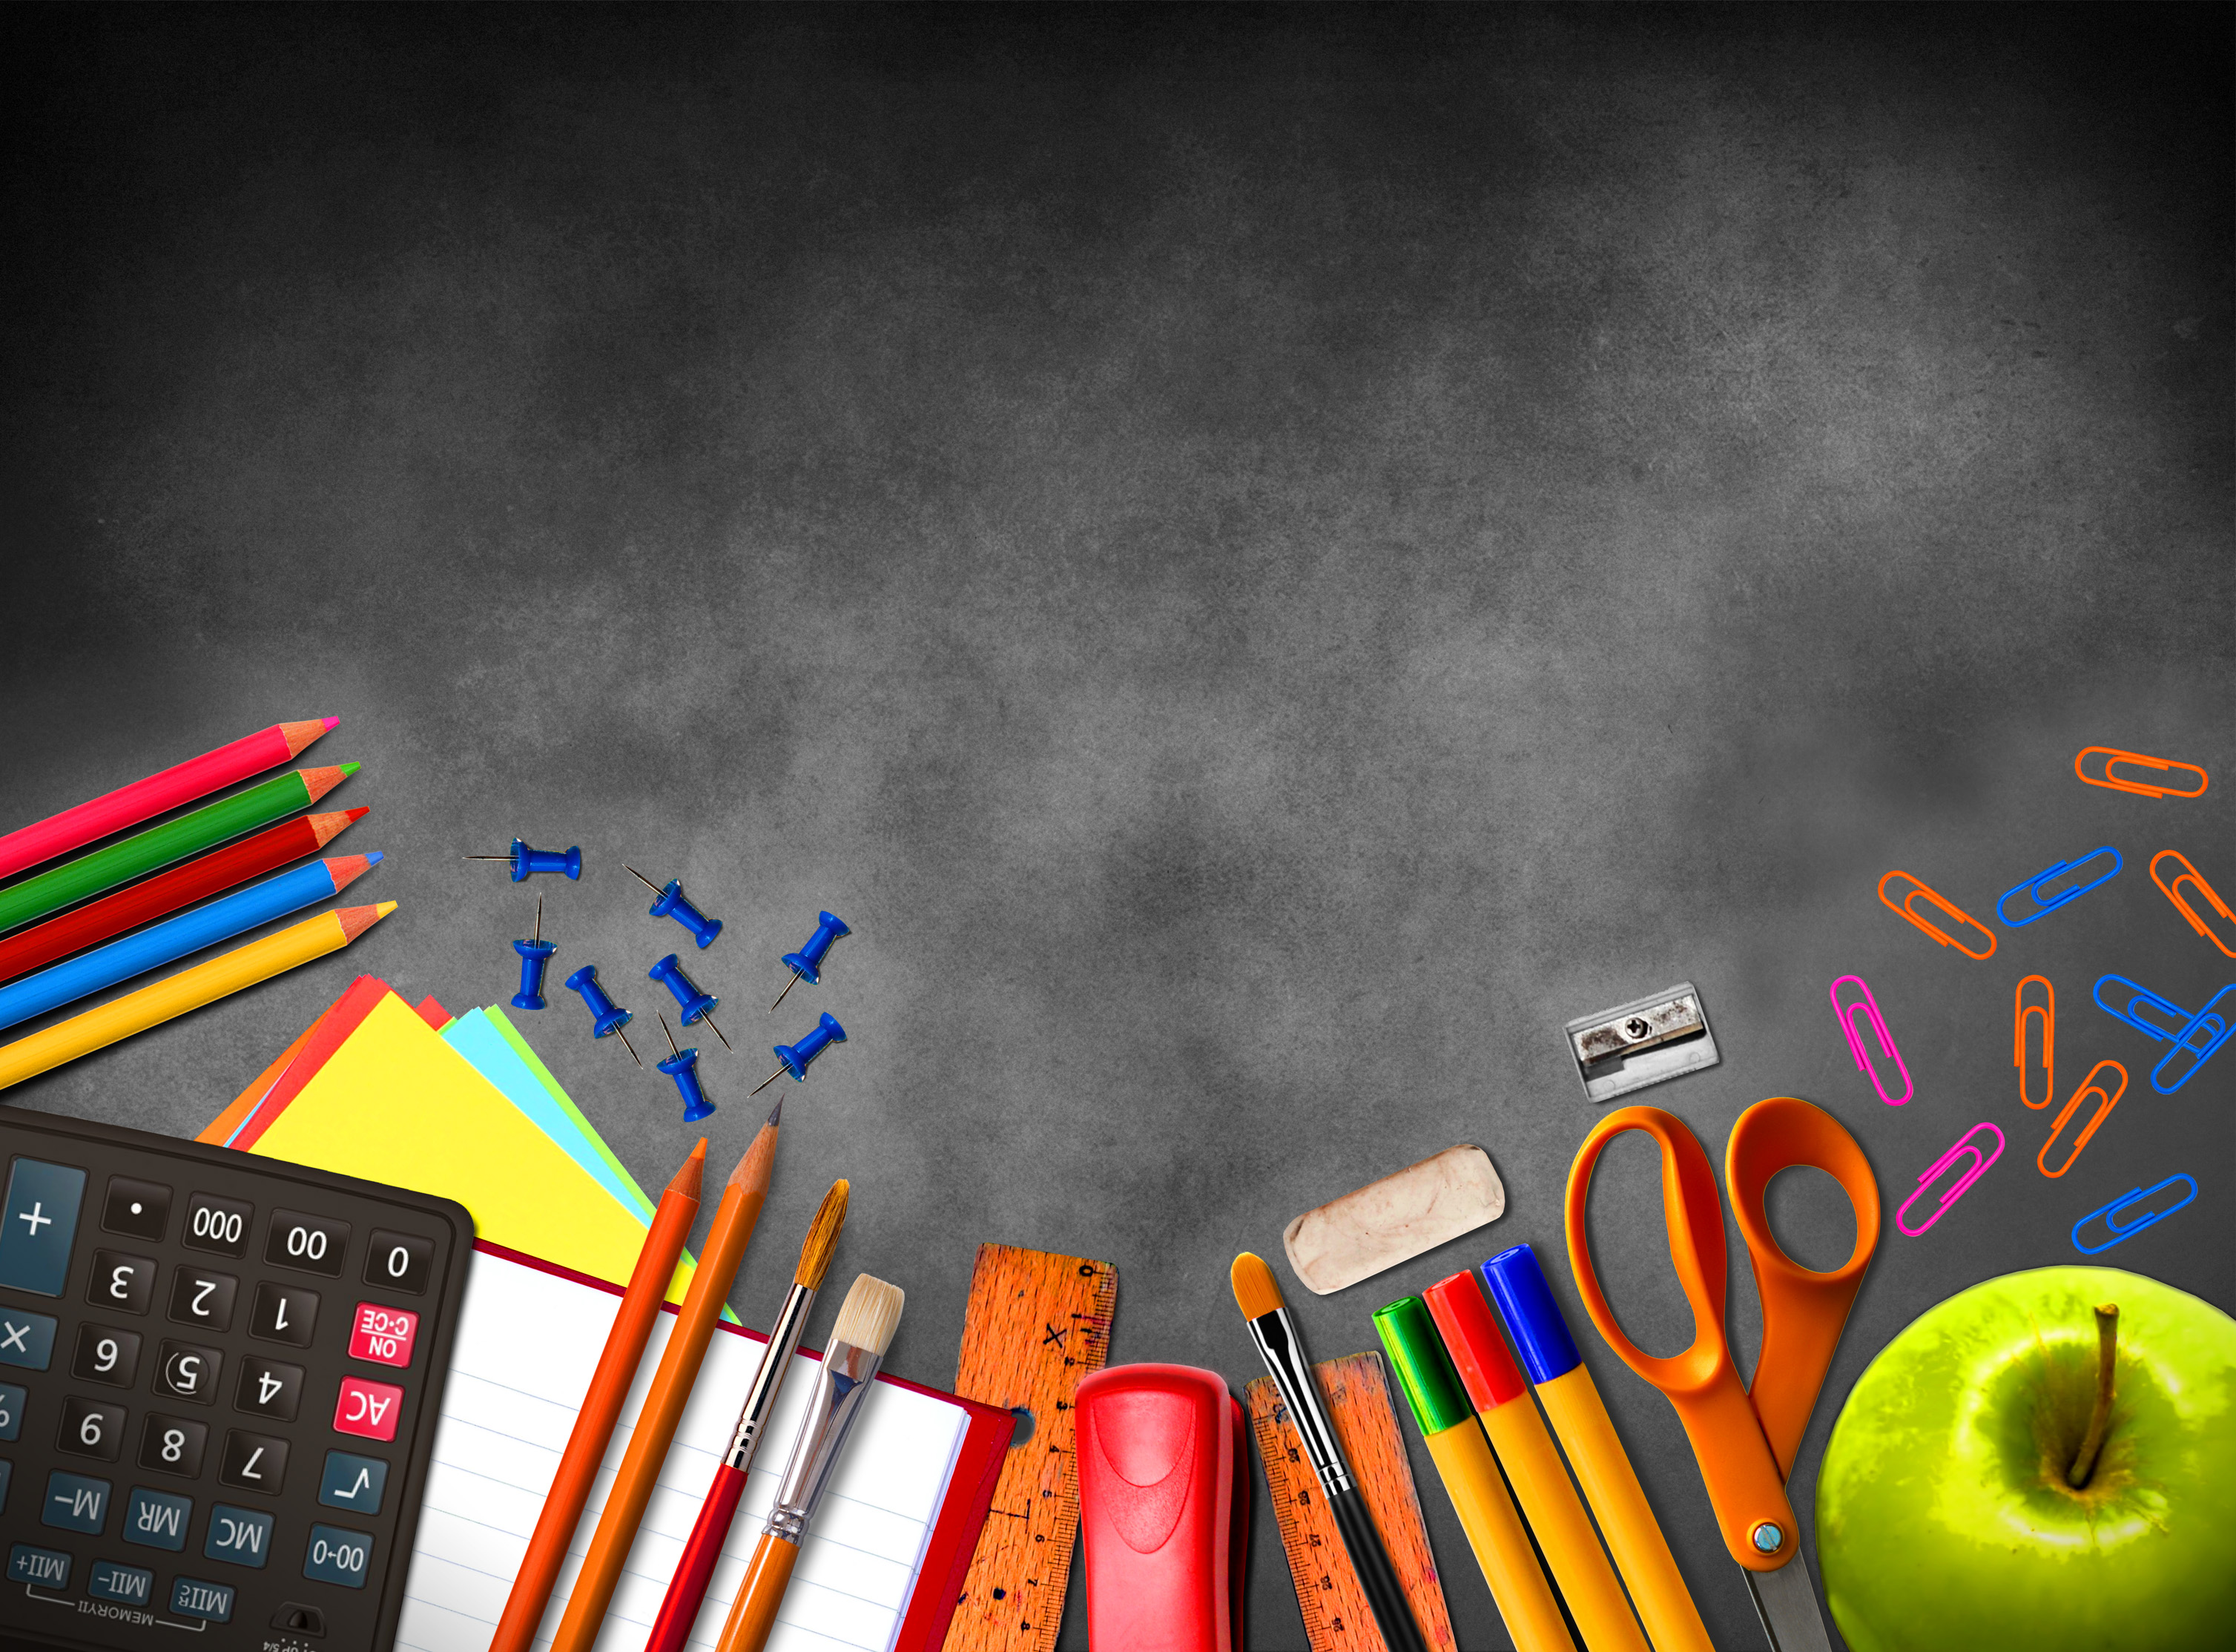 Illustration of school supplies and material on blackboard background, Above, Project, Pens, Picture, HQ Photo